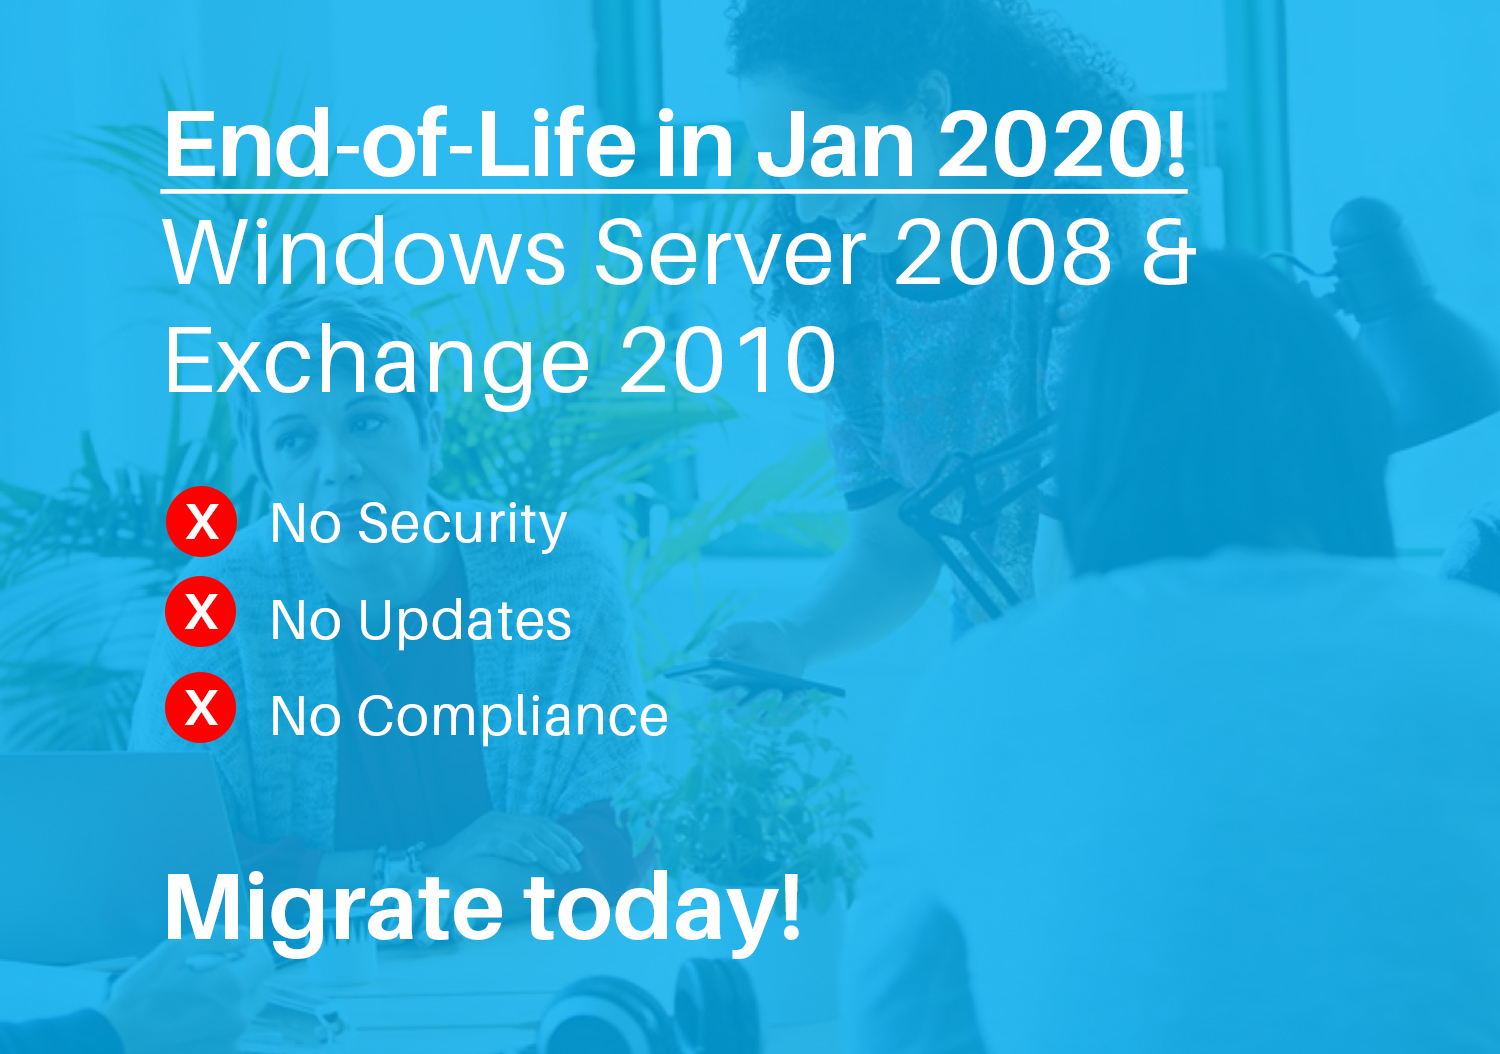 Critical Update! End of Support for Windows Server 2008 & Exchange 2010